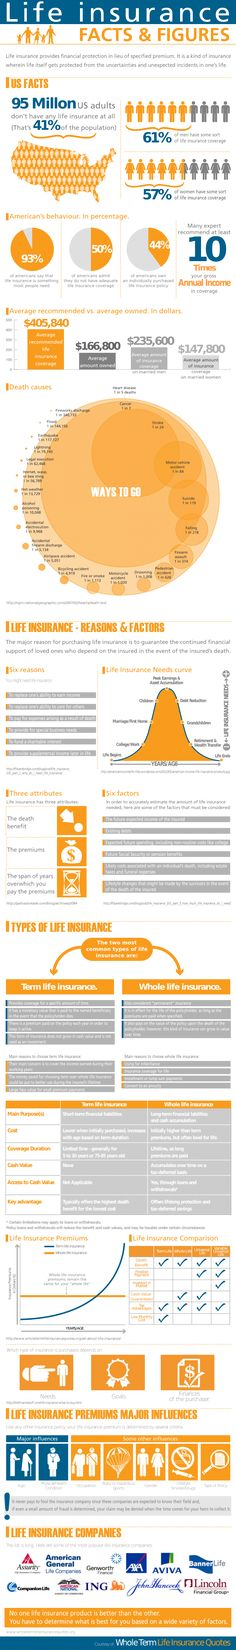 Life Insurance Facts & Figures